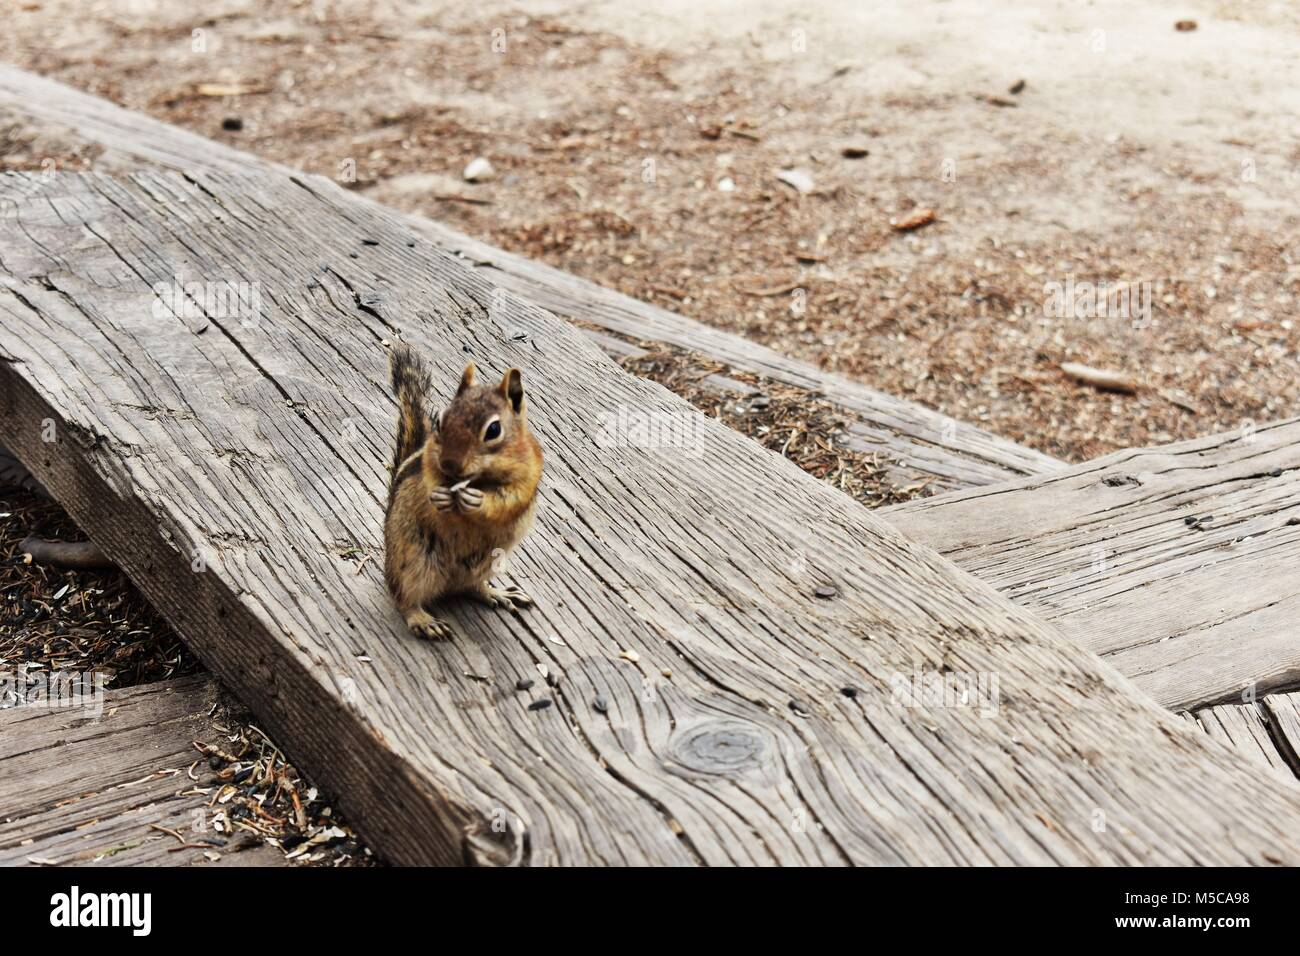 Grignotage Chipmunk Photo Stock